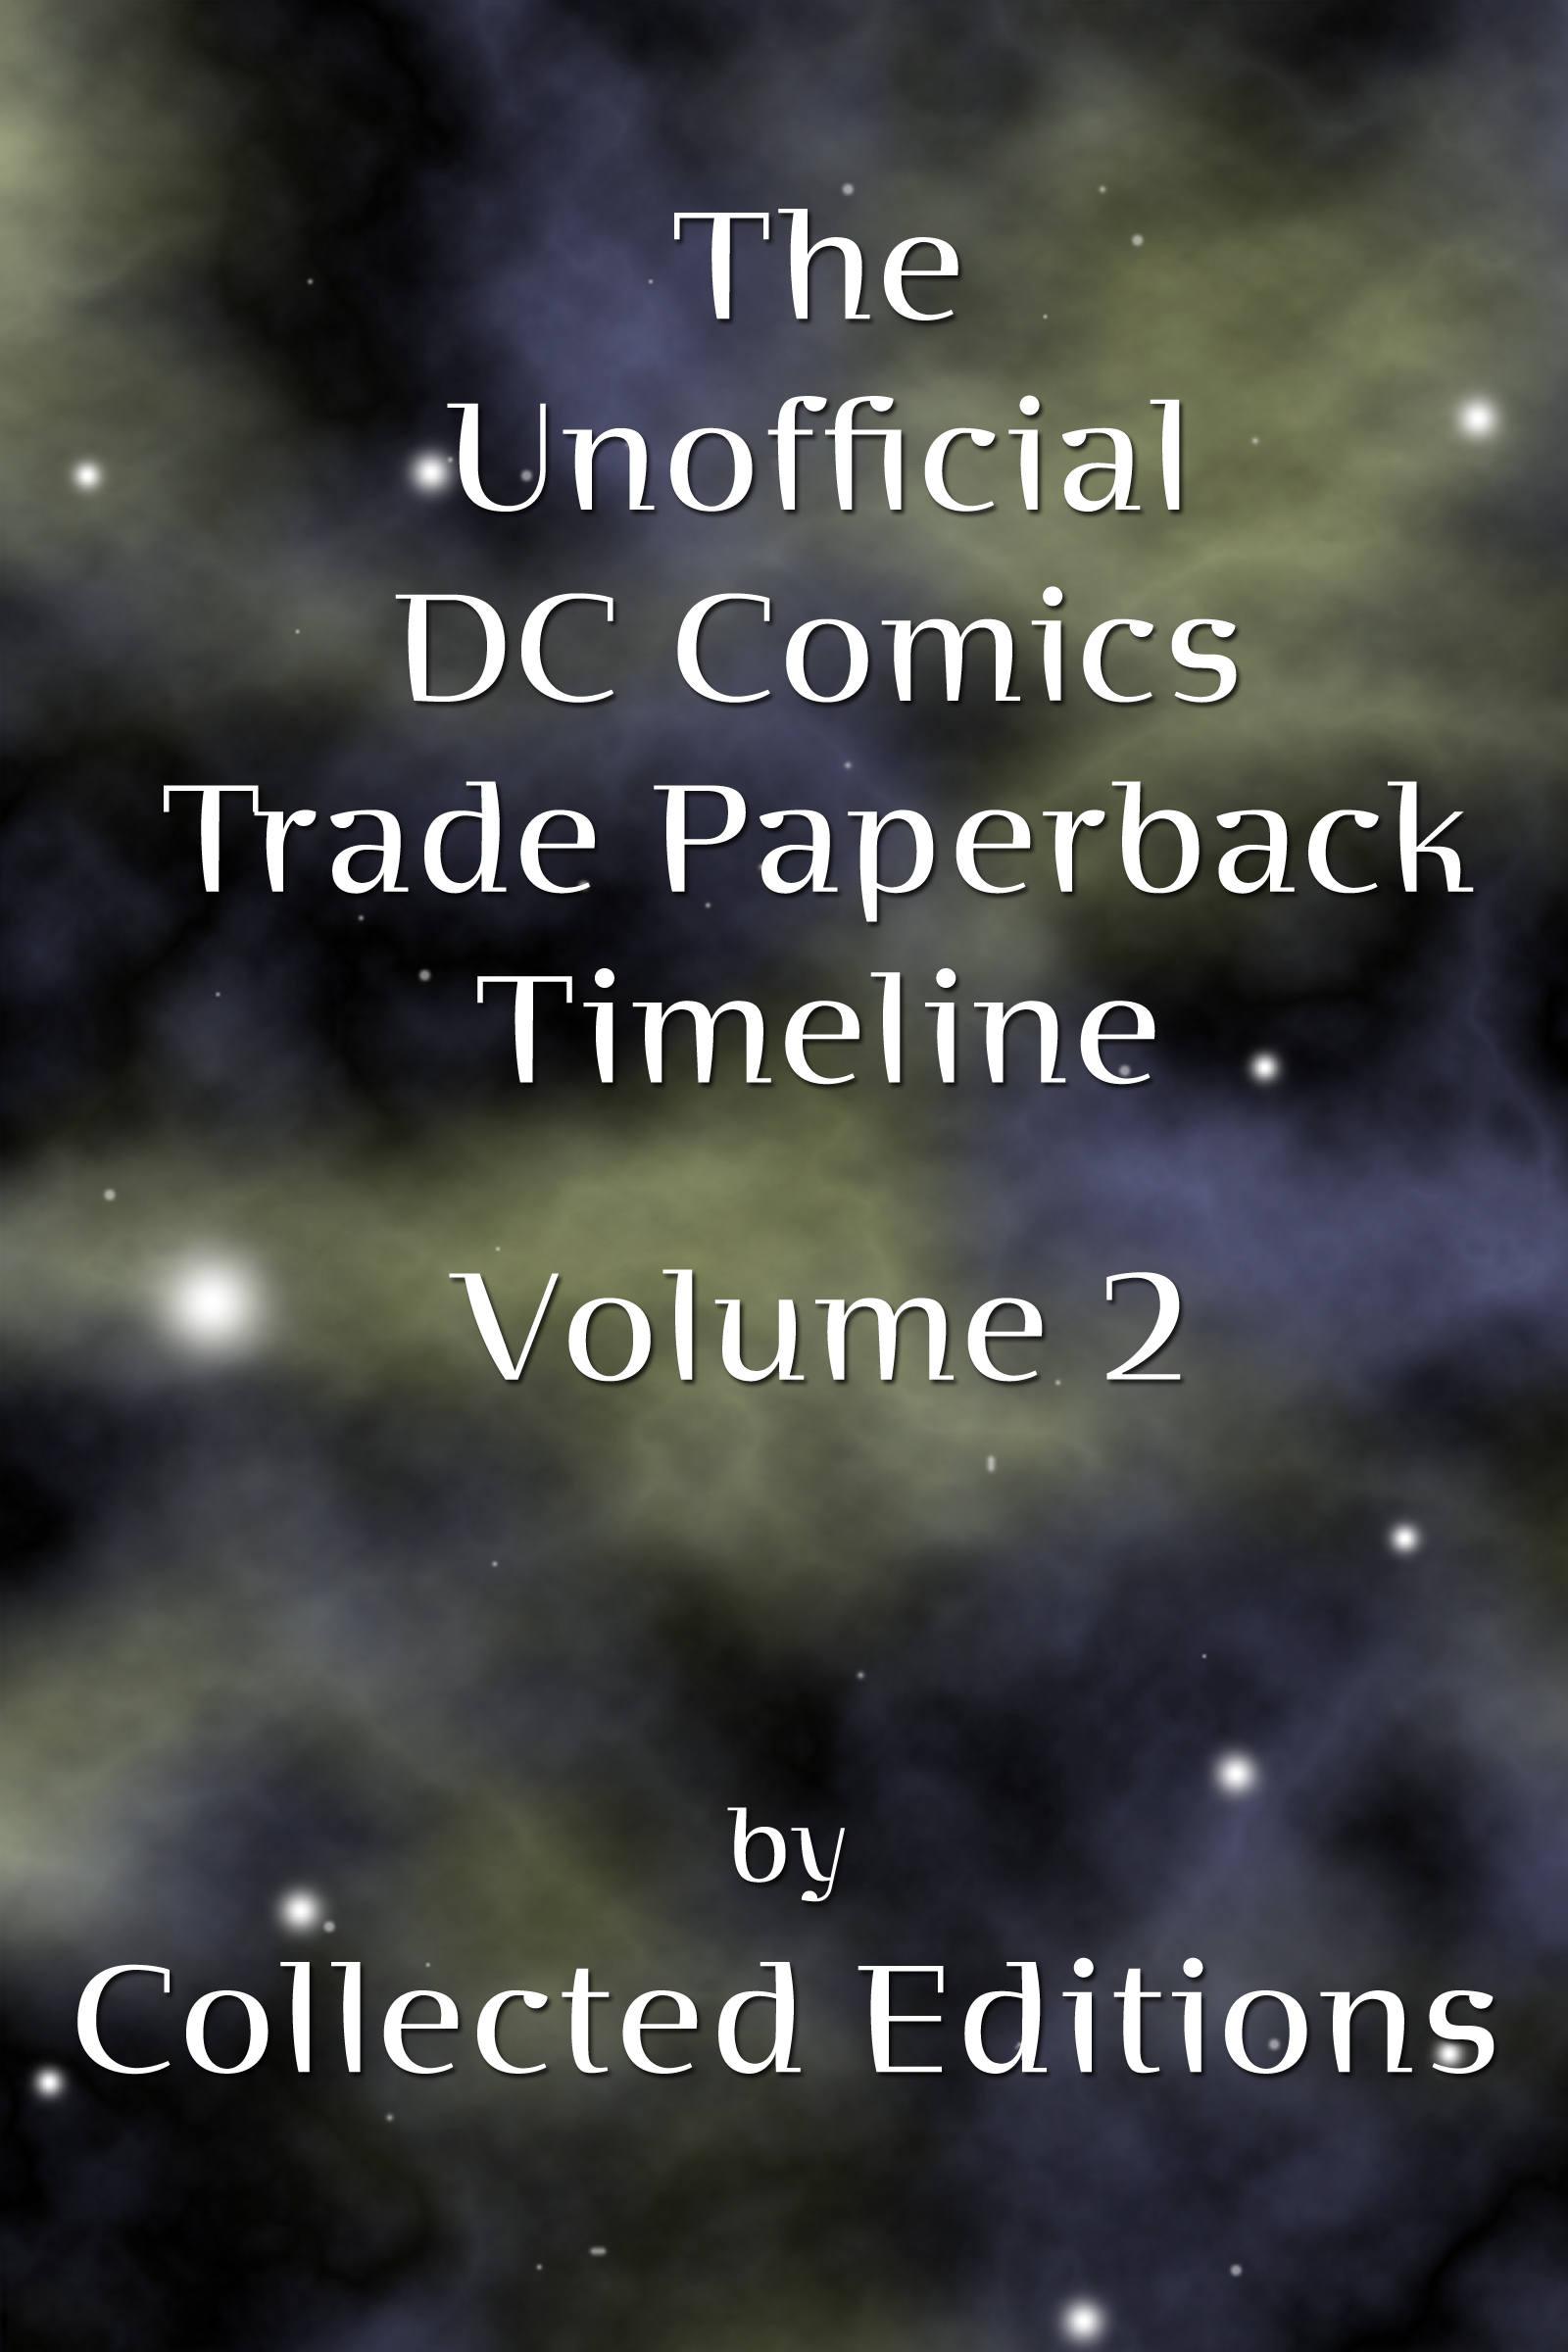 The Unofficial DC Comics Trade Paperback Timeline Vol. 2